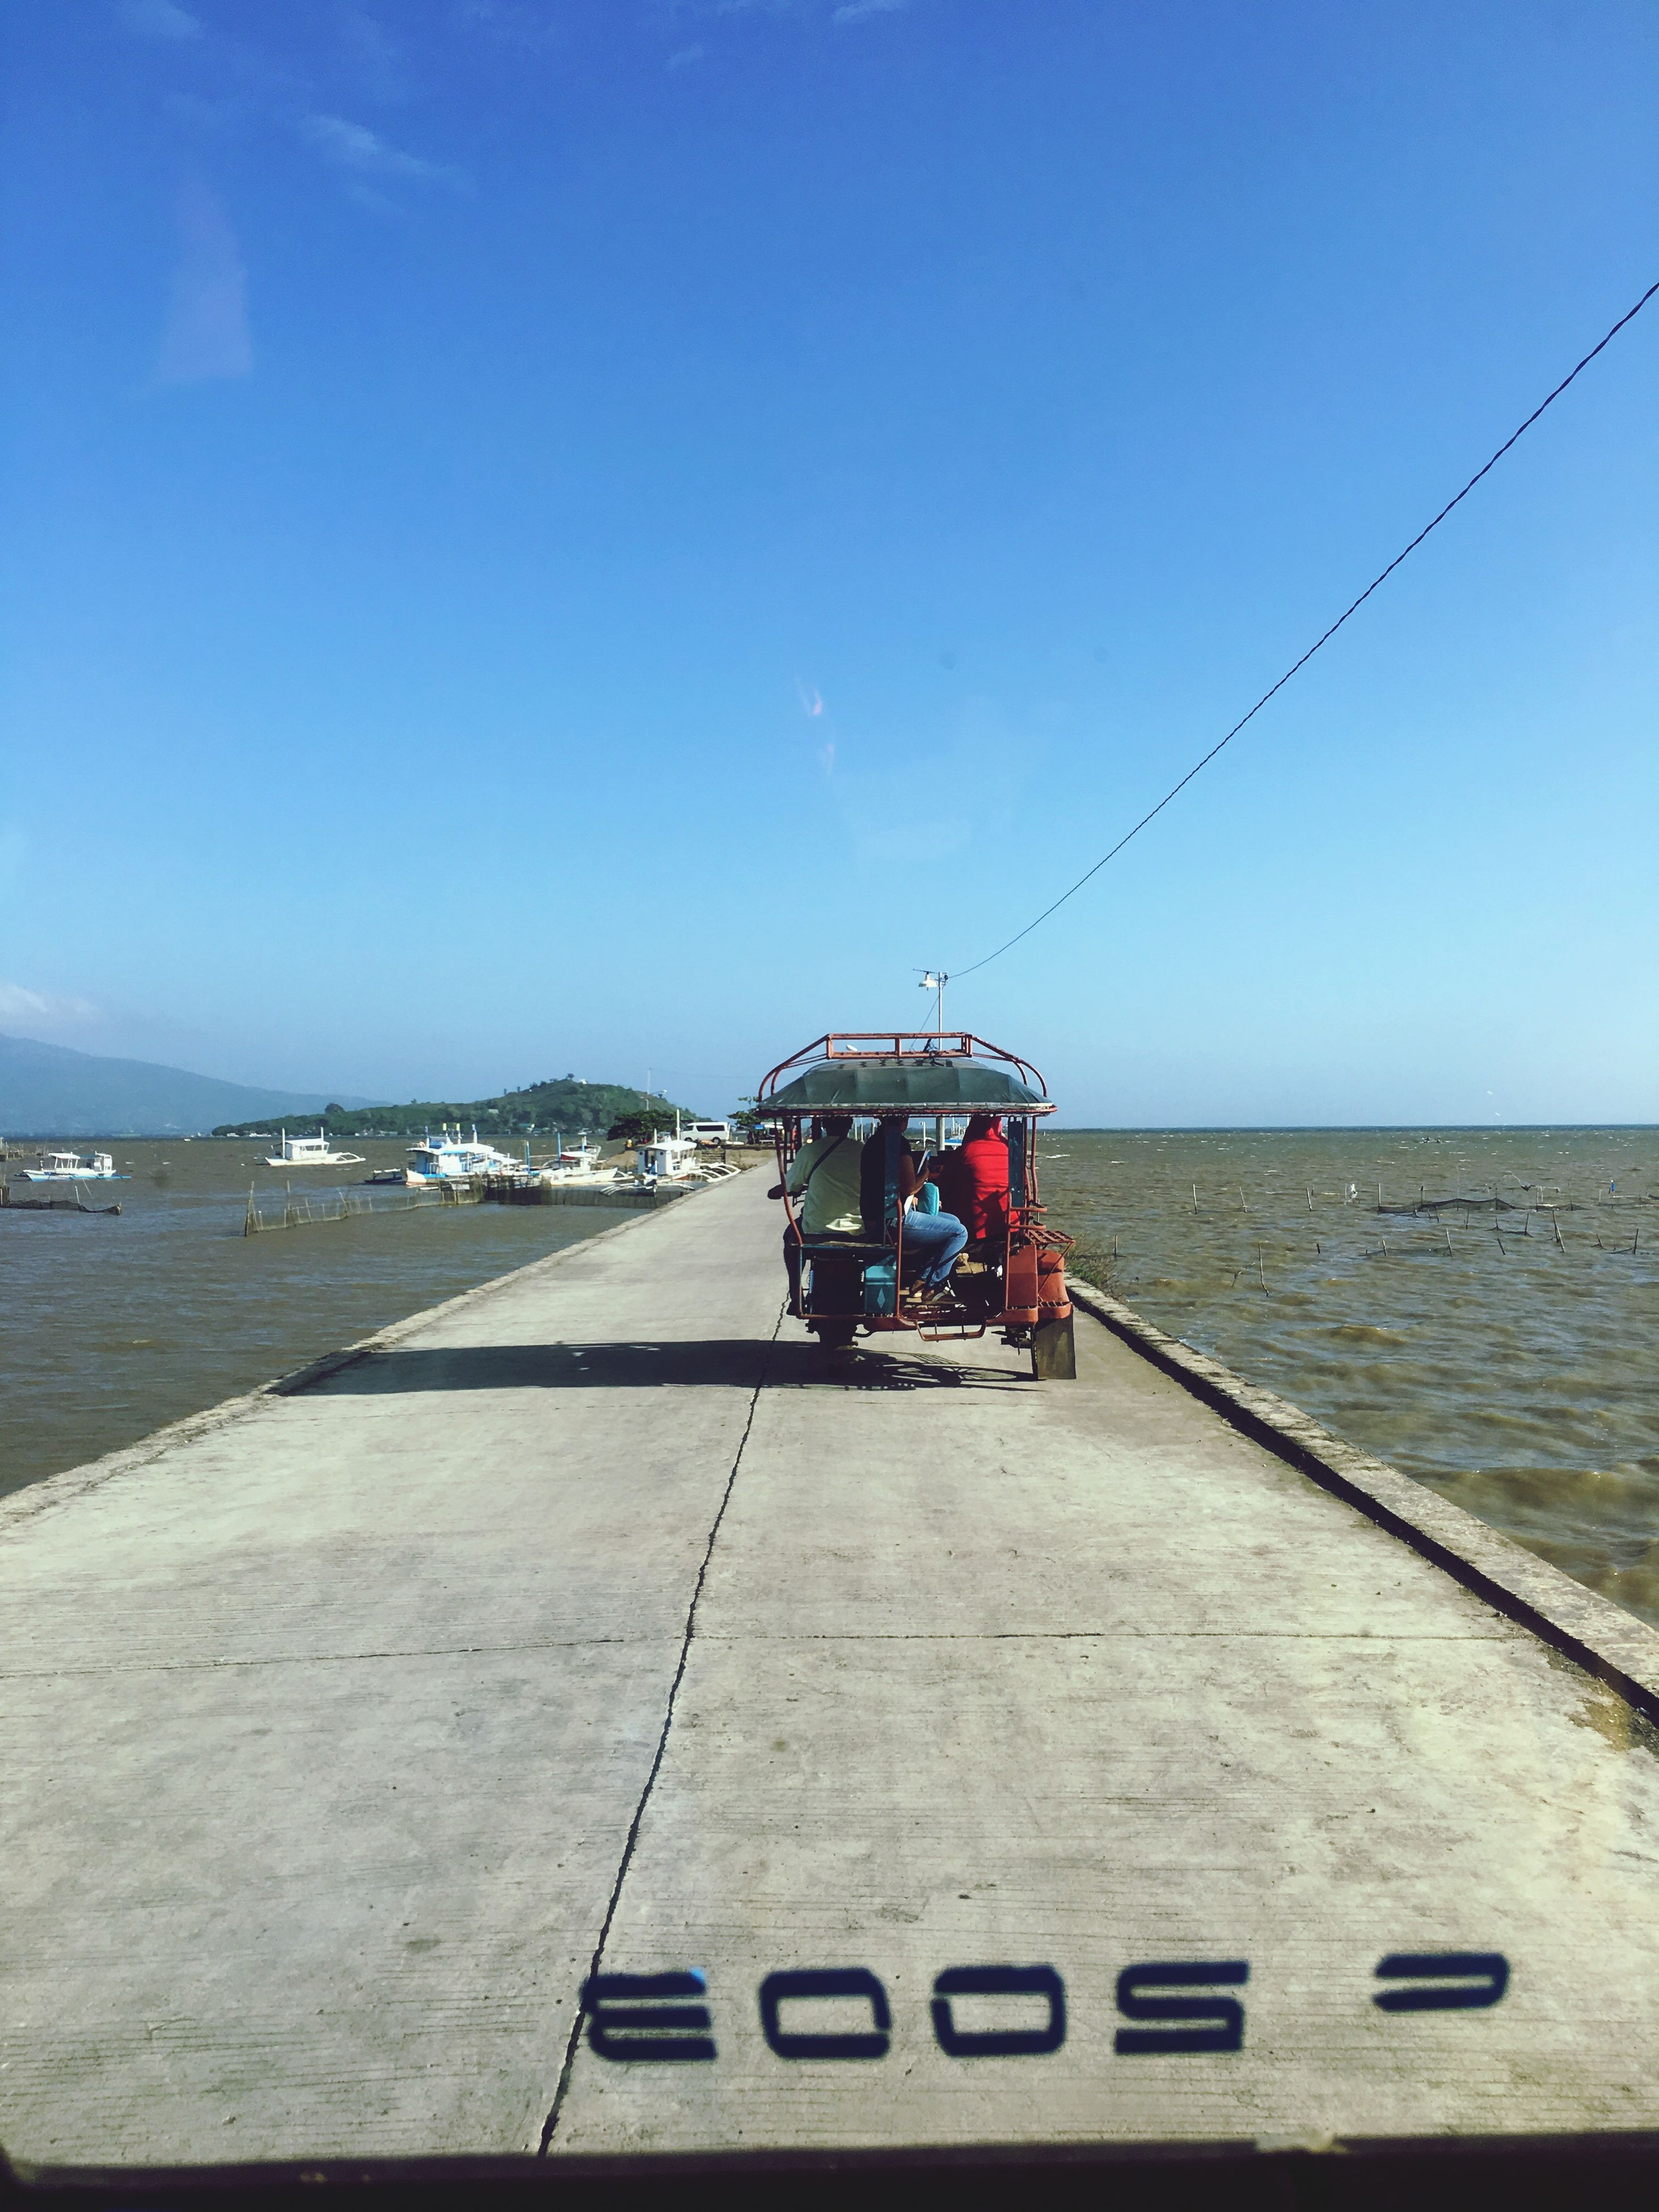 sea, sky, water, horizon over water, mode of transport, transportation, beauty in nature, clear sky, outdoors, scenics, land vehicle, nature, beach, day, no people